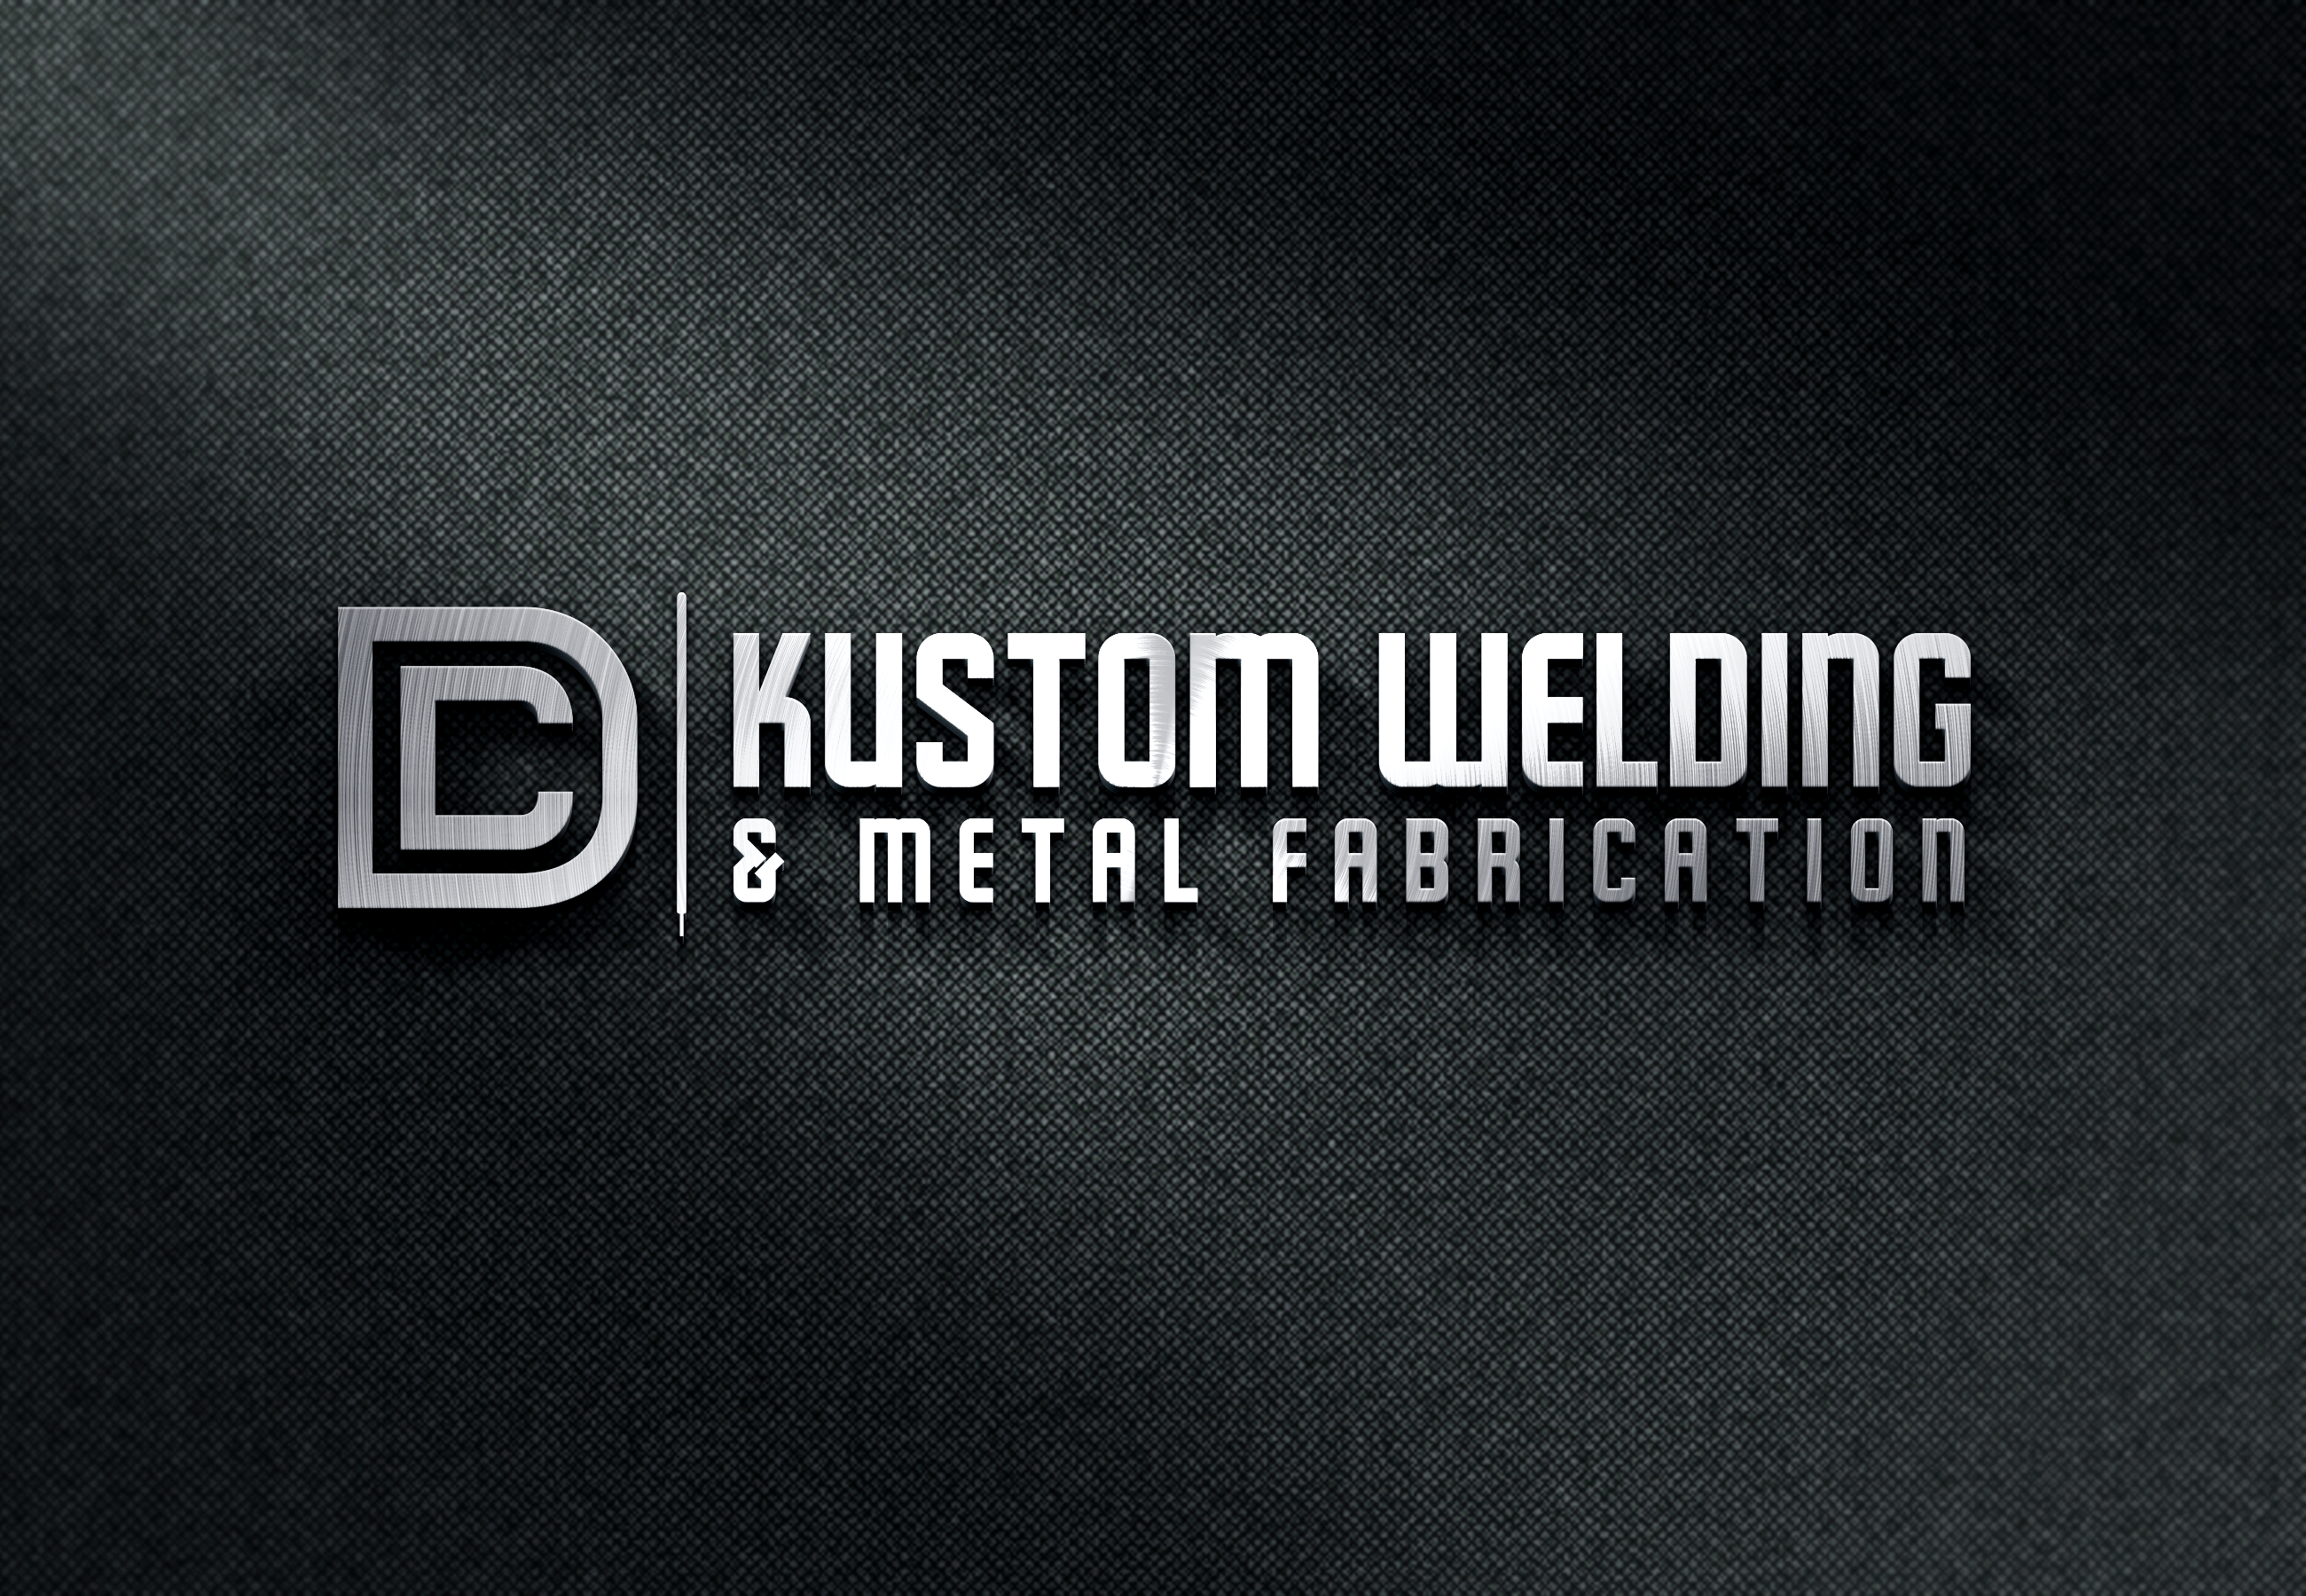 Logo Design by Juan Luna - Entry No. 106 in the Logo Design Contest Imaginative Logo Design for DC KUSTOM WELDING & METAL FABRICATION.